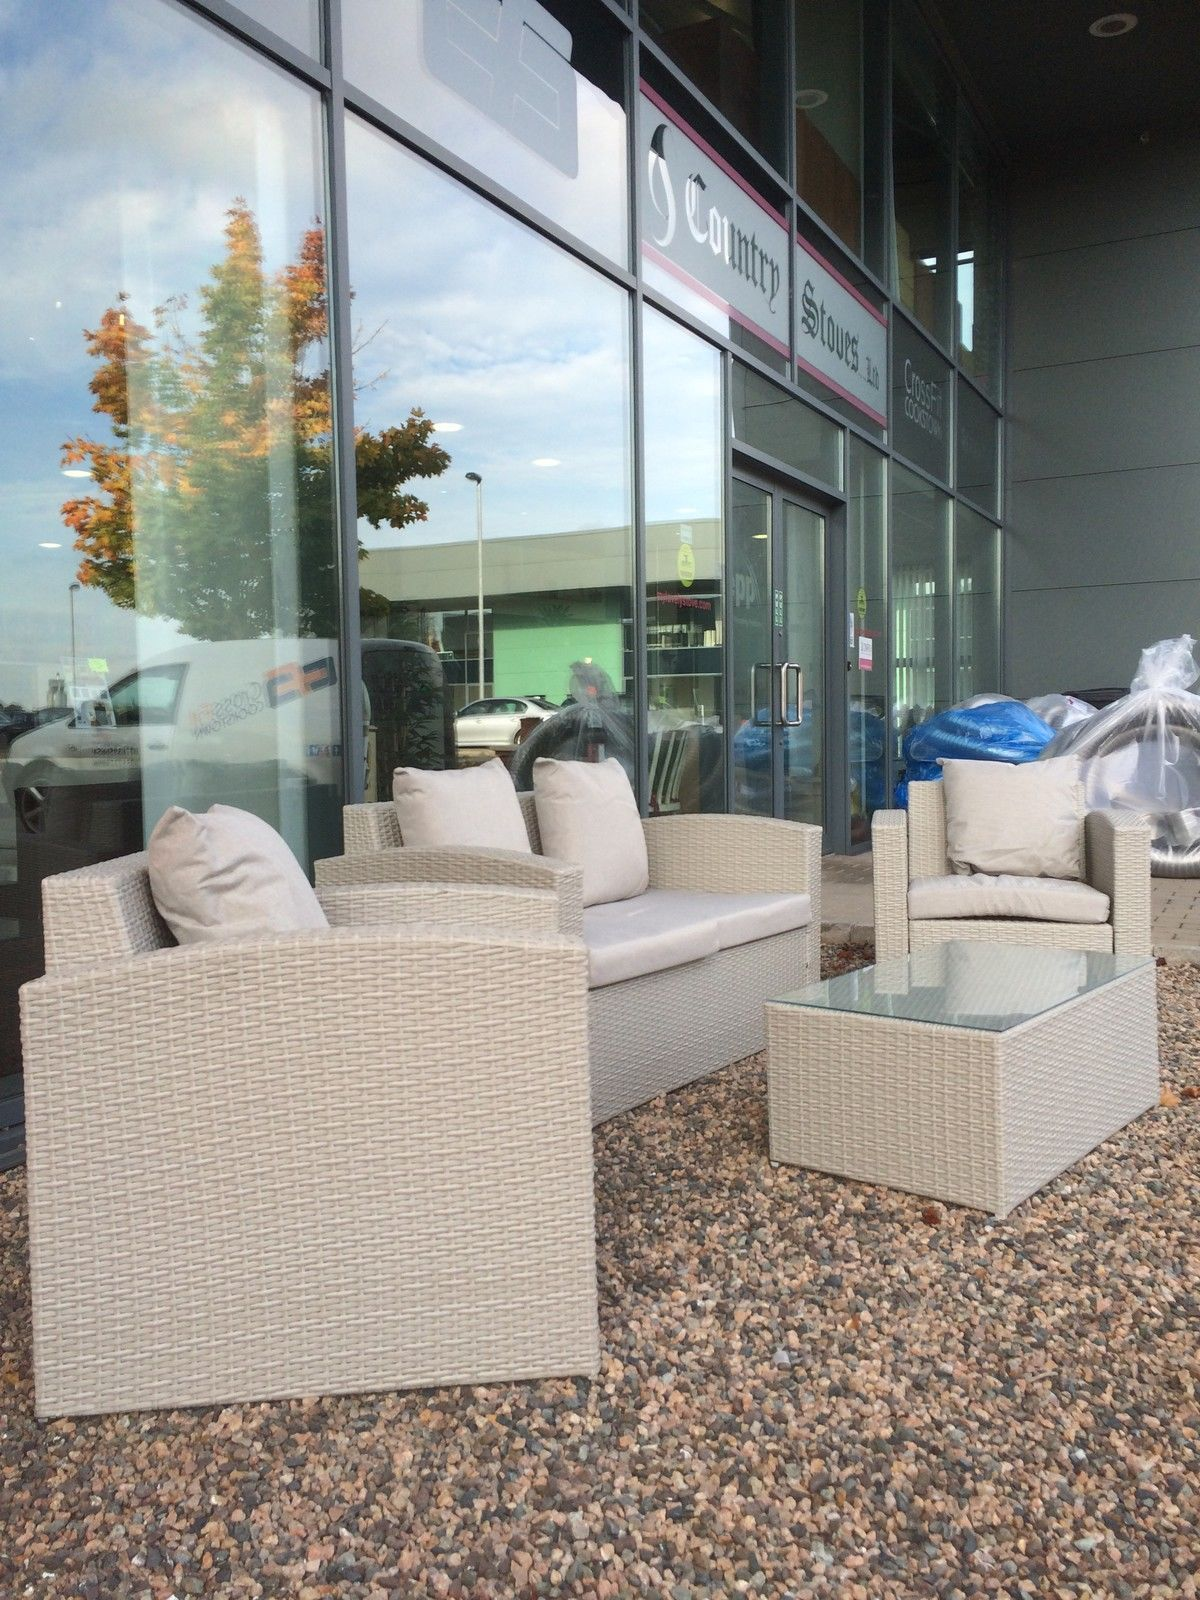 Garden Furniture Ni rattan deluxe garden furniture set